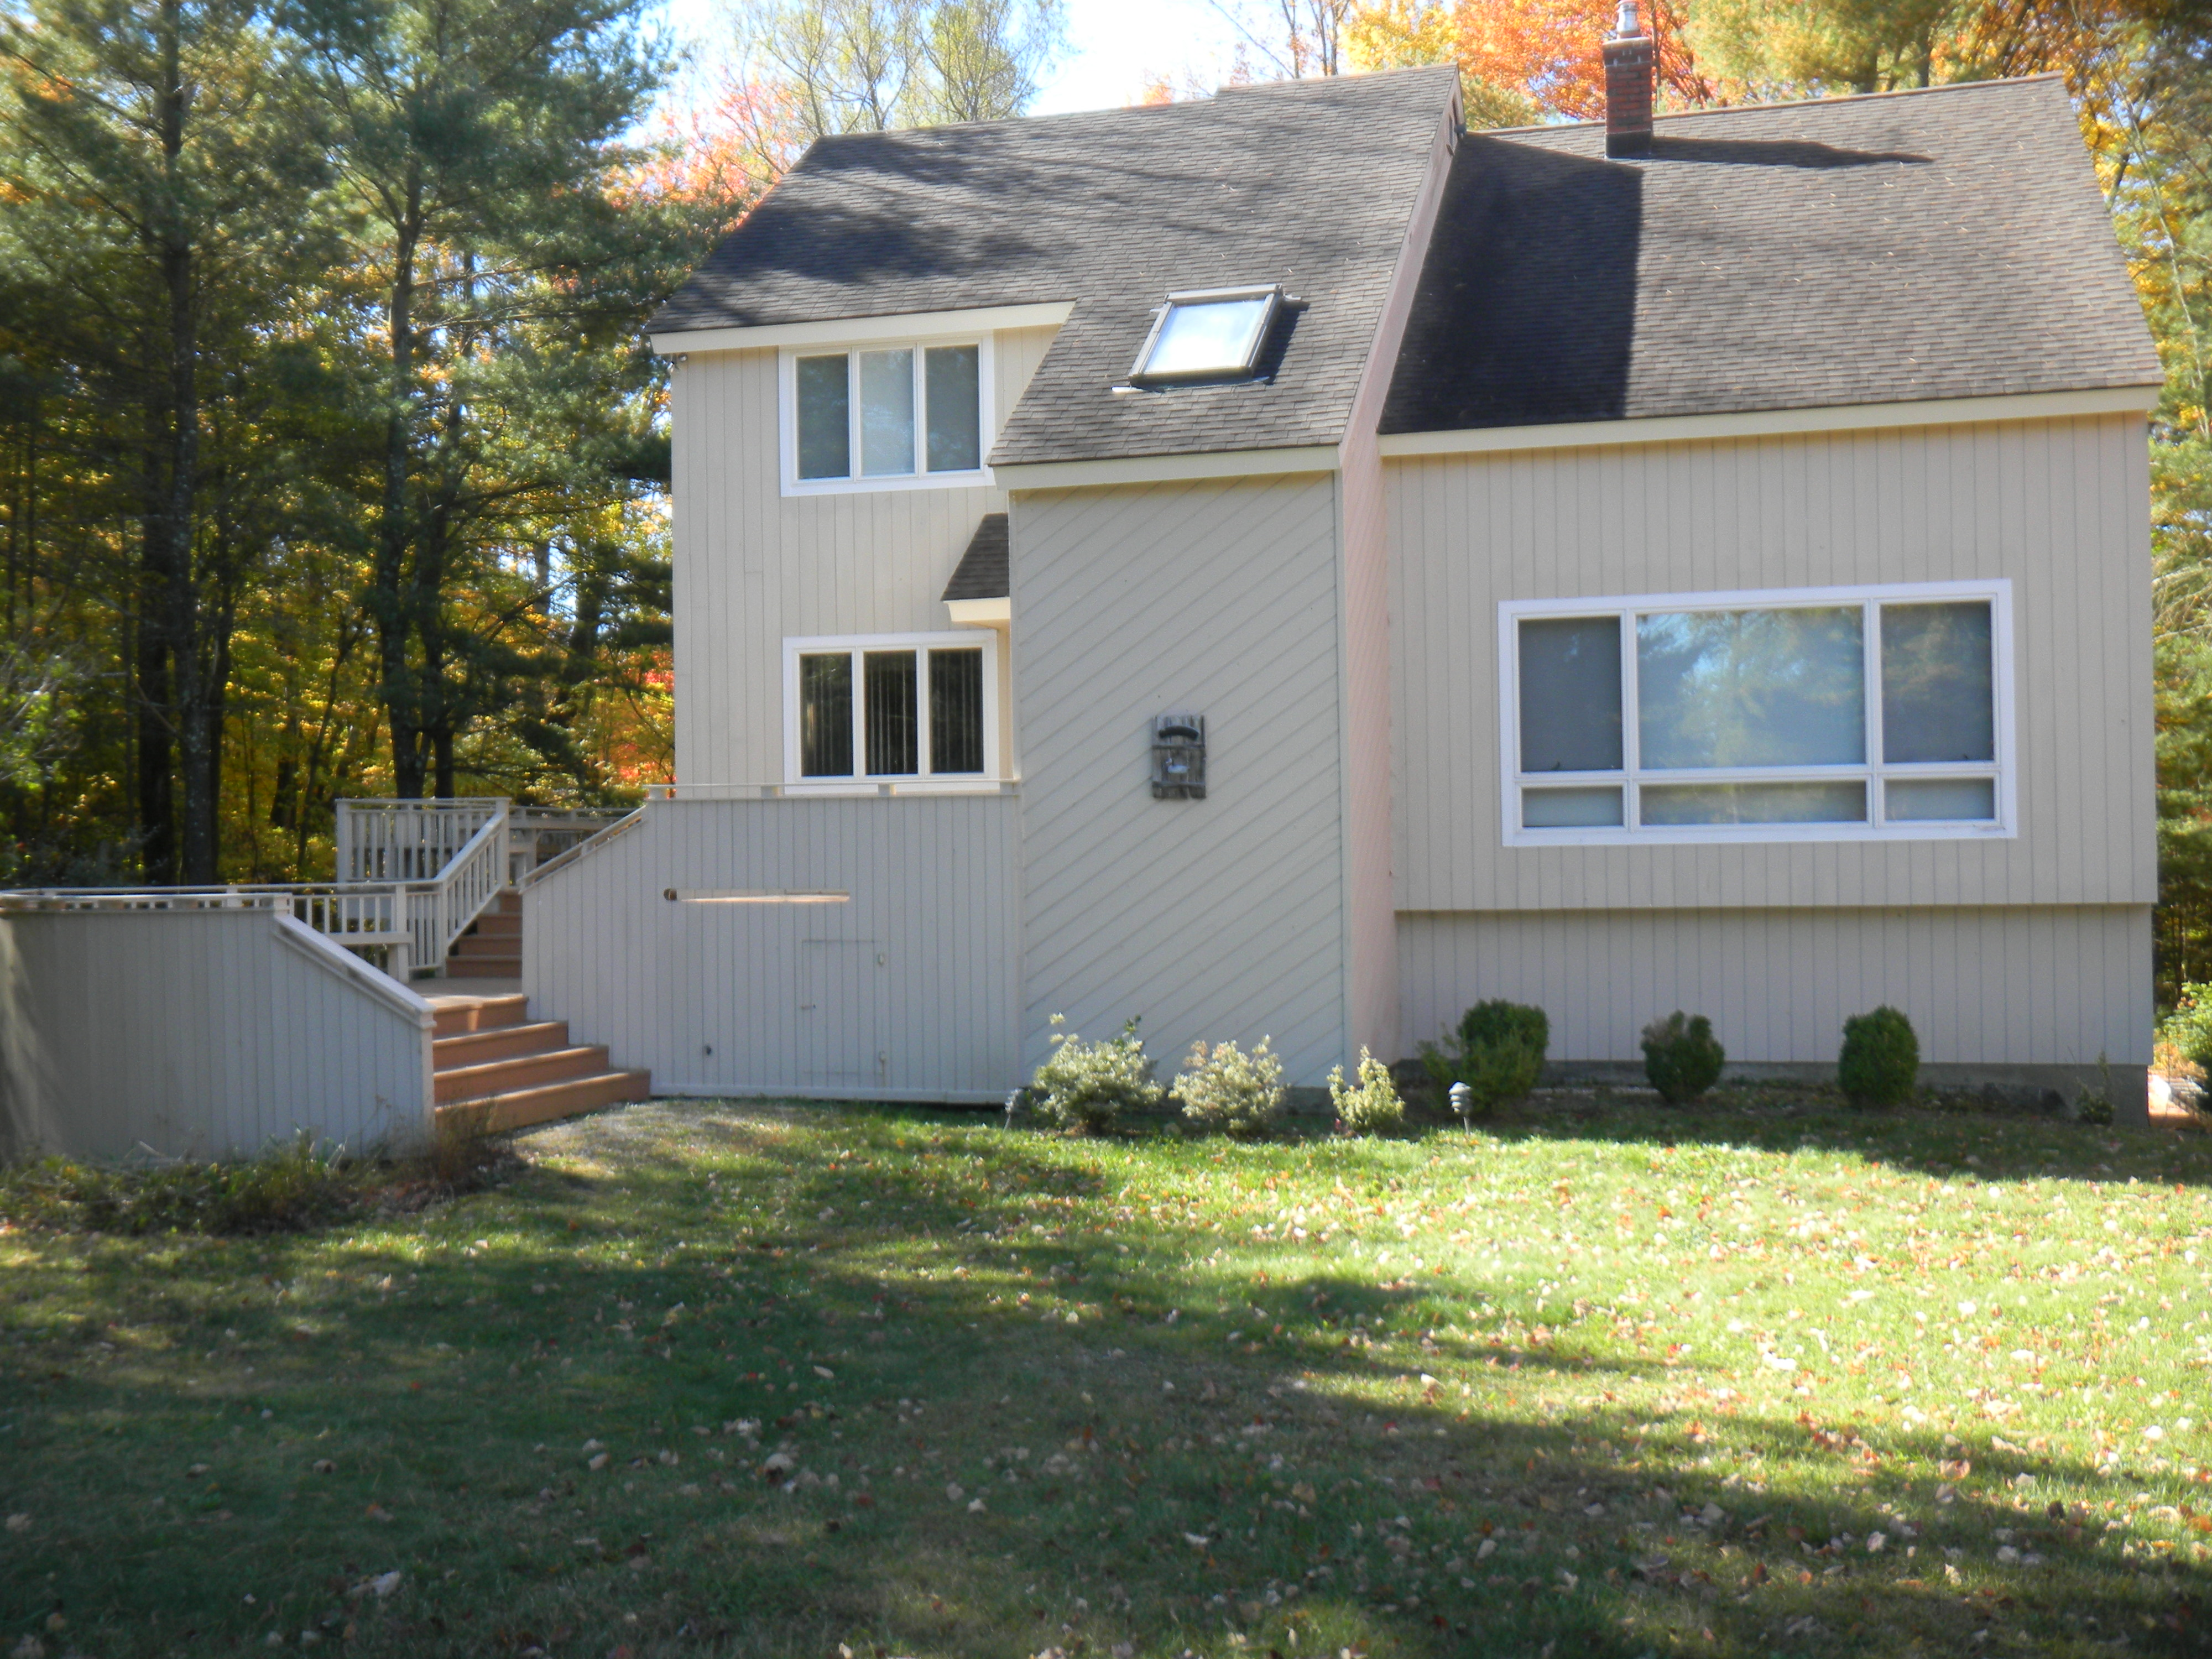 Single Family Home for Sale at Woodridge Lake Cotemporary + Waterfront Lot 19 Wynnwood Ct Goshen, Connecticut, 06756 United States